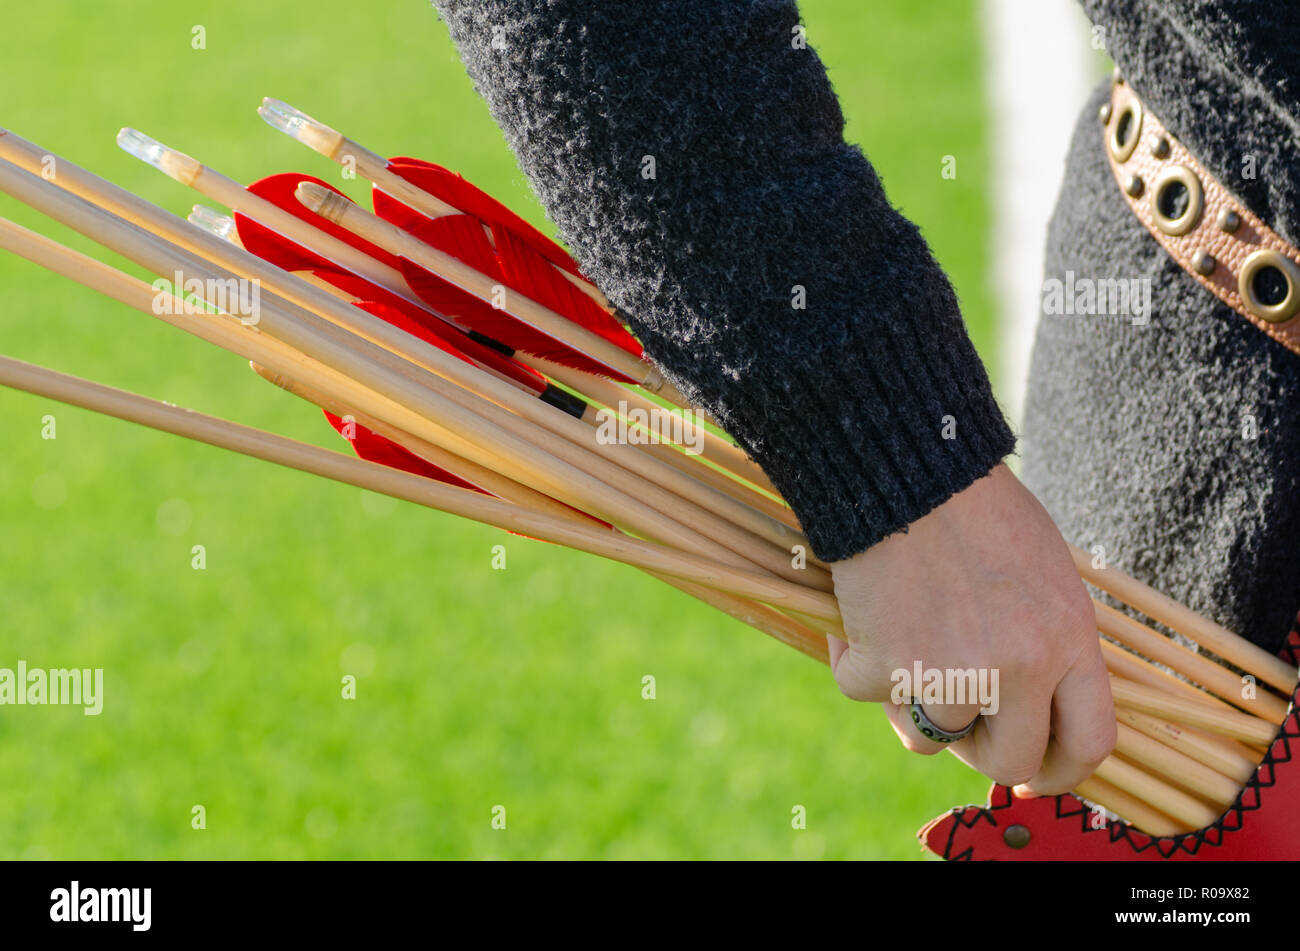 Traditional Archery Competitions.Female archer is checking the arrows before the competition. - Stock Image